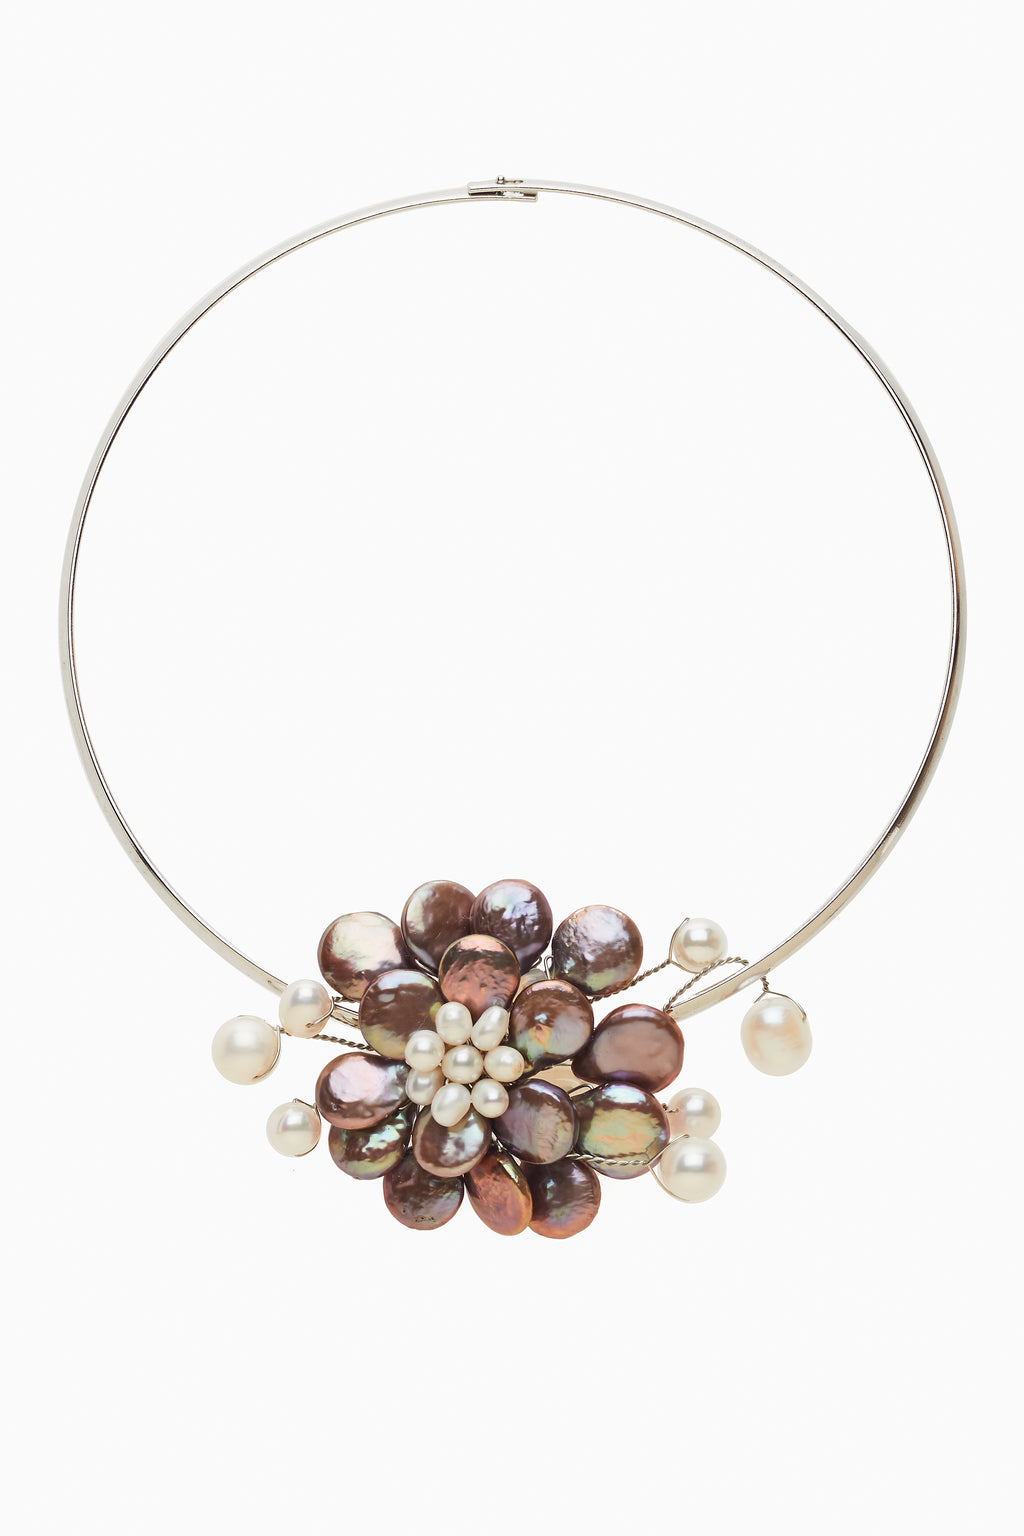 Bronze Freshwater Coin Pearls Neck Ring Choker